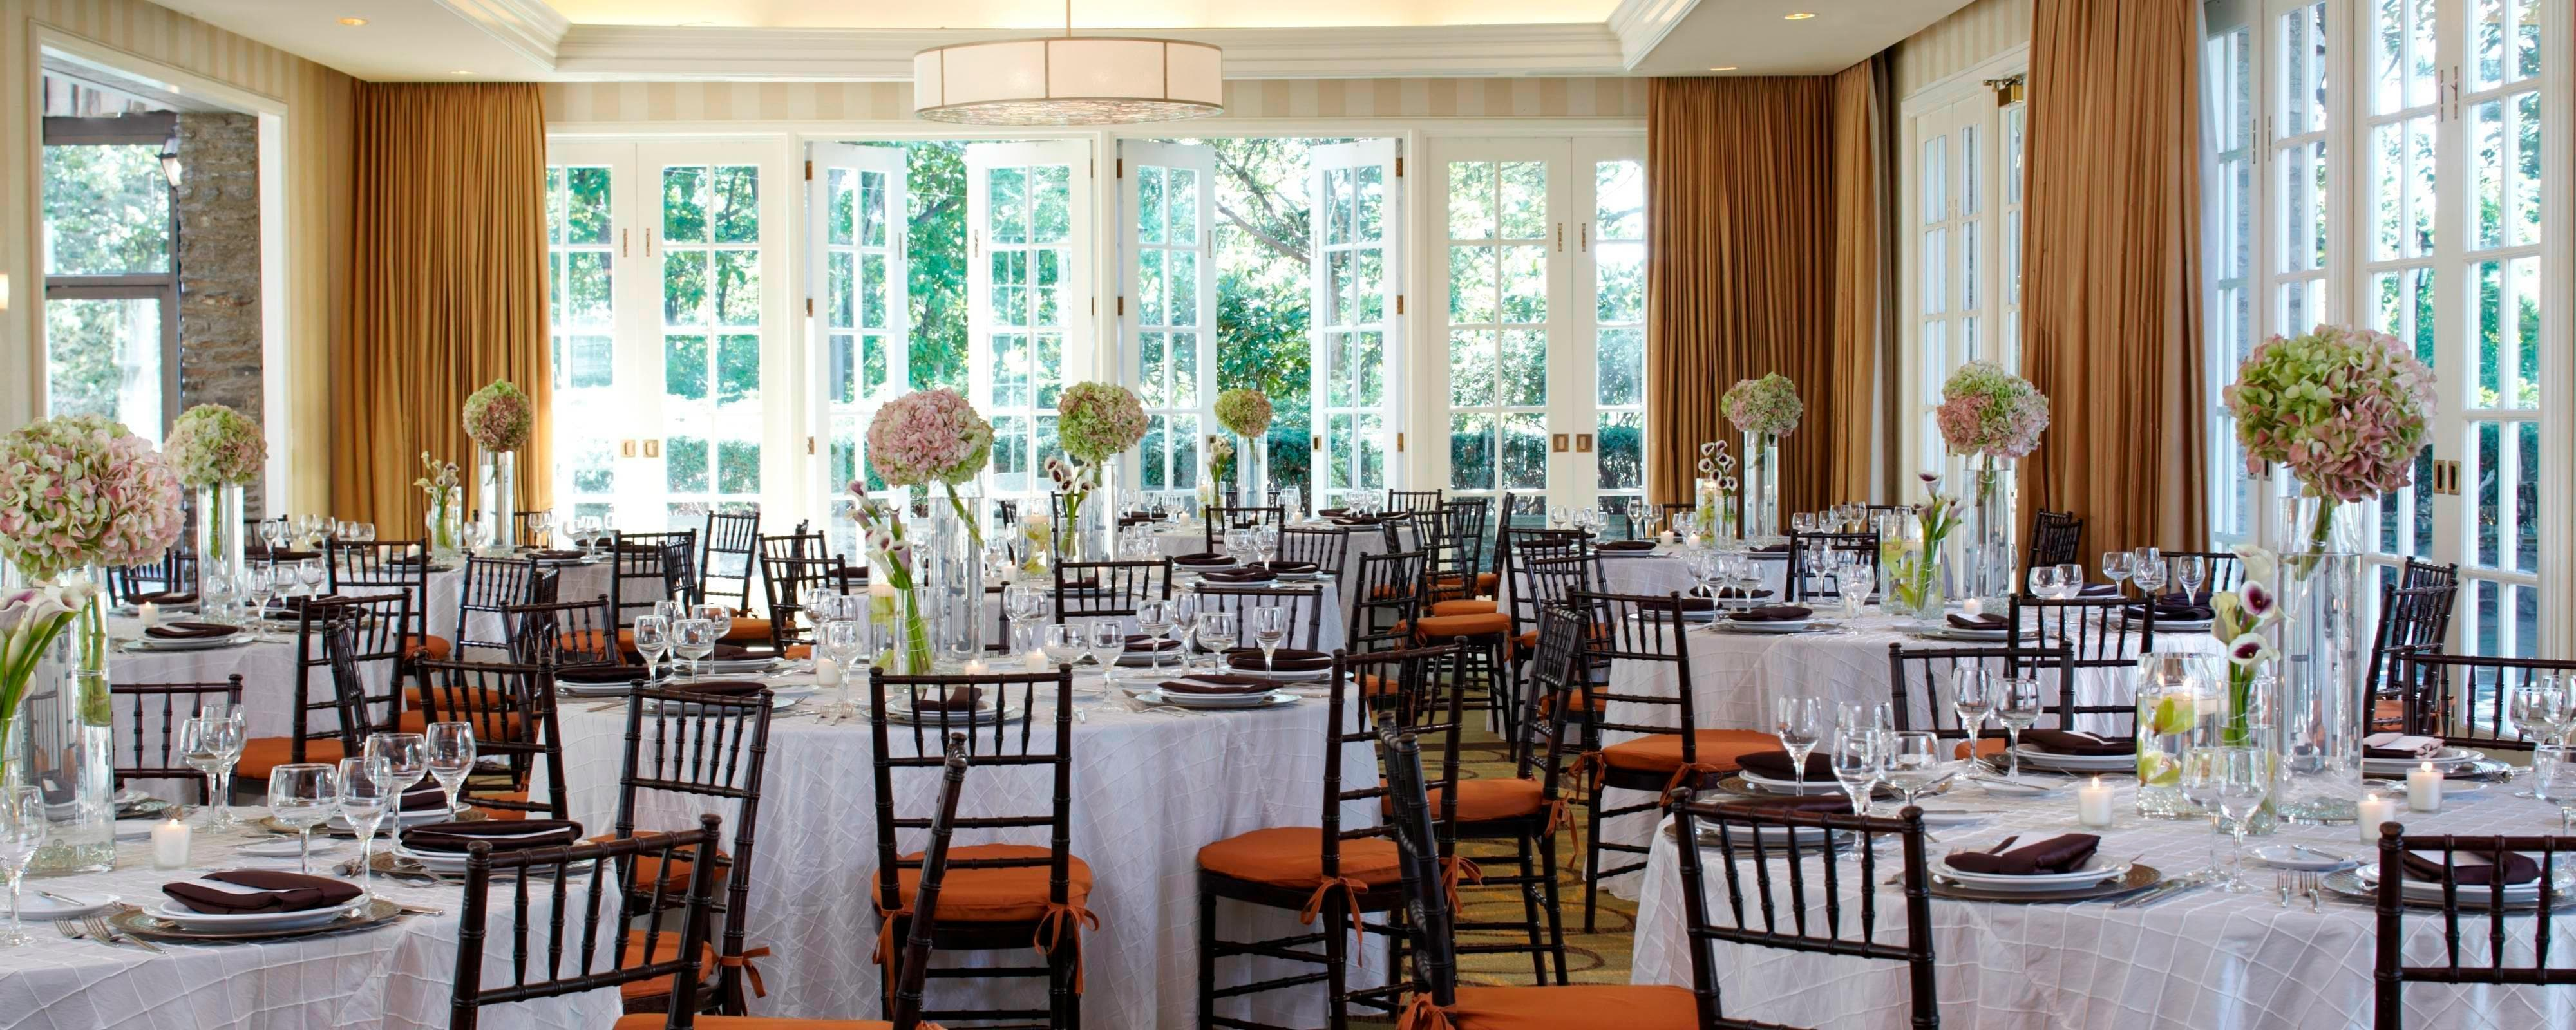 Hotels With Banquet Rooms In Westchester Ny